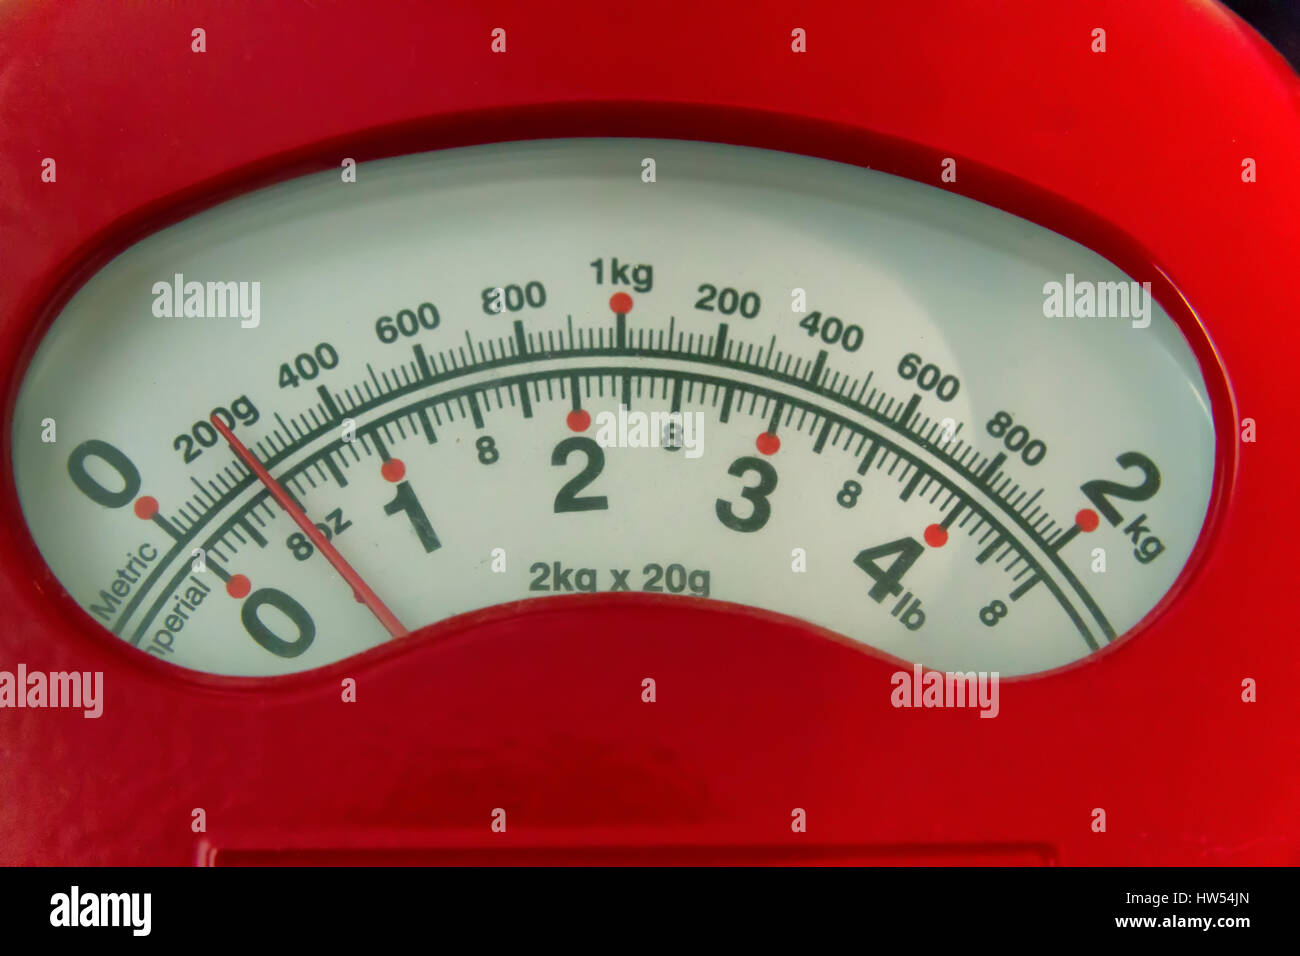 Dial on a set of weighing scales - Stock Image